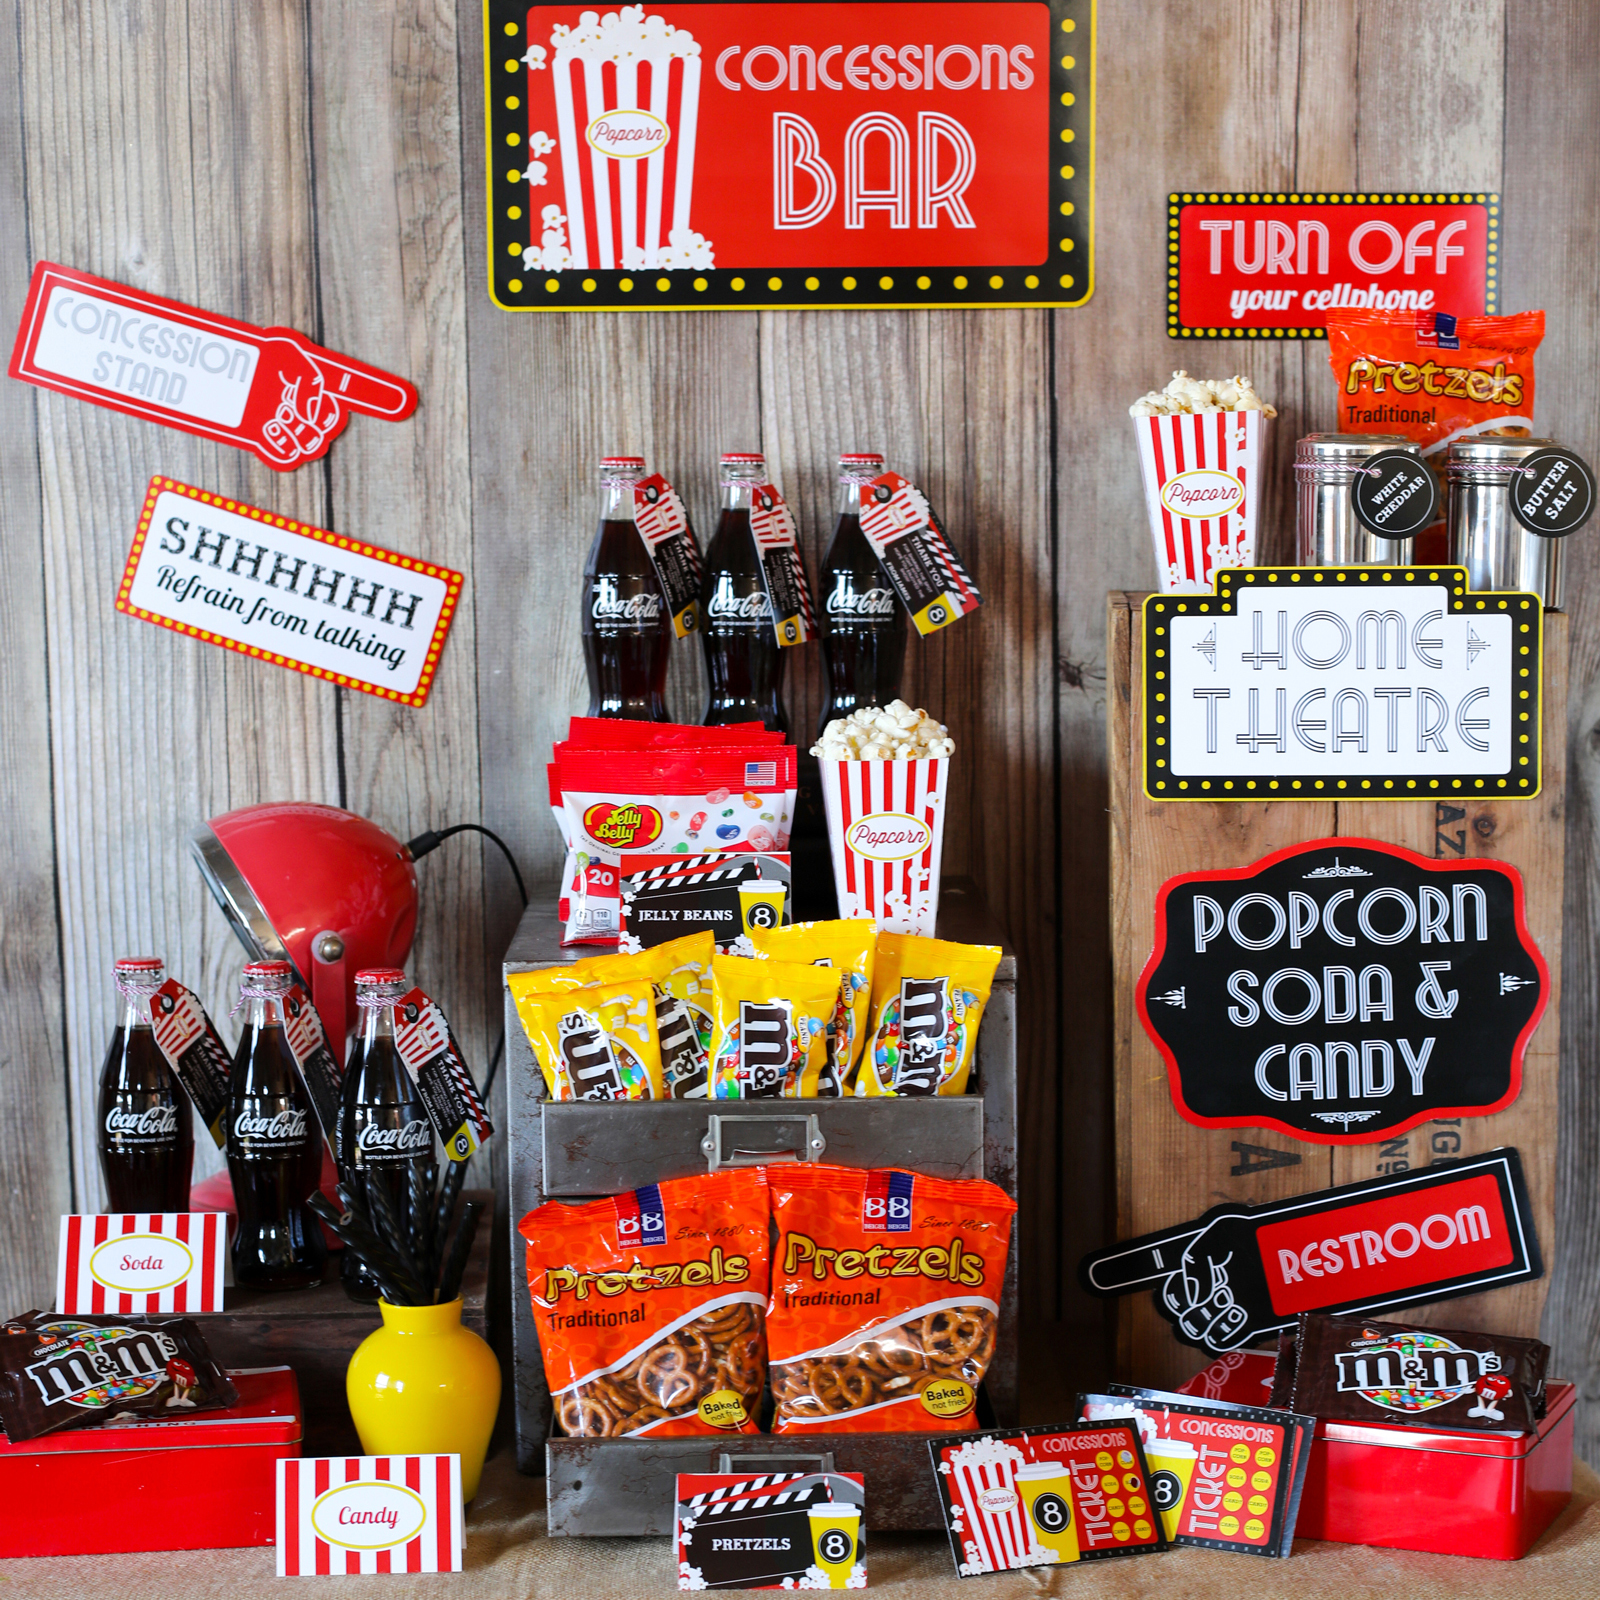 photograph relating to Concession Stand Signs Printable named House Video Concession Stand Editable Get together Fixed Up